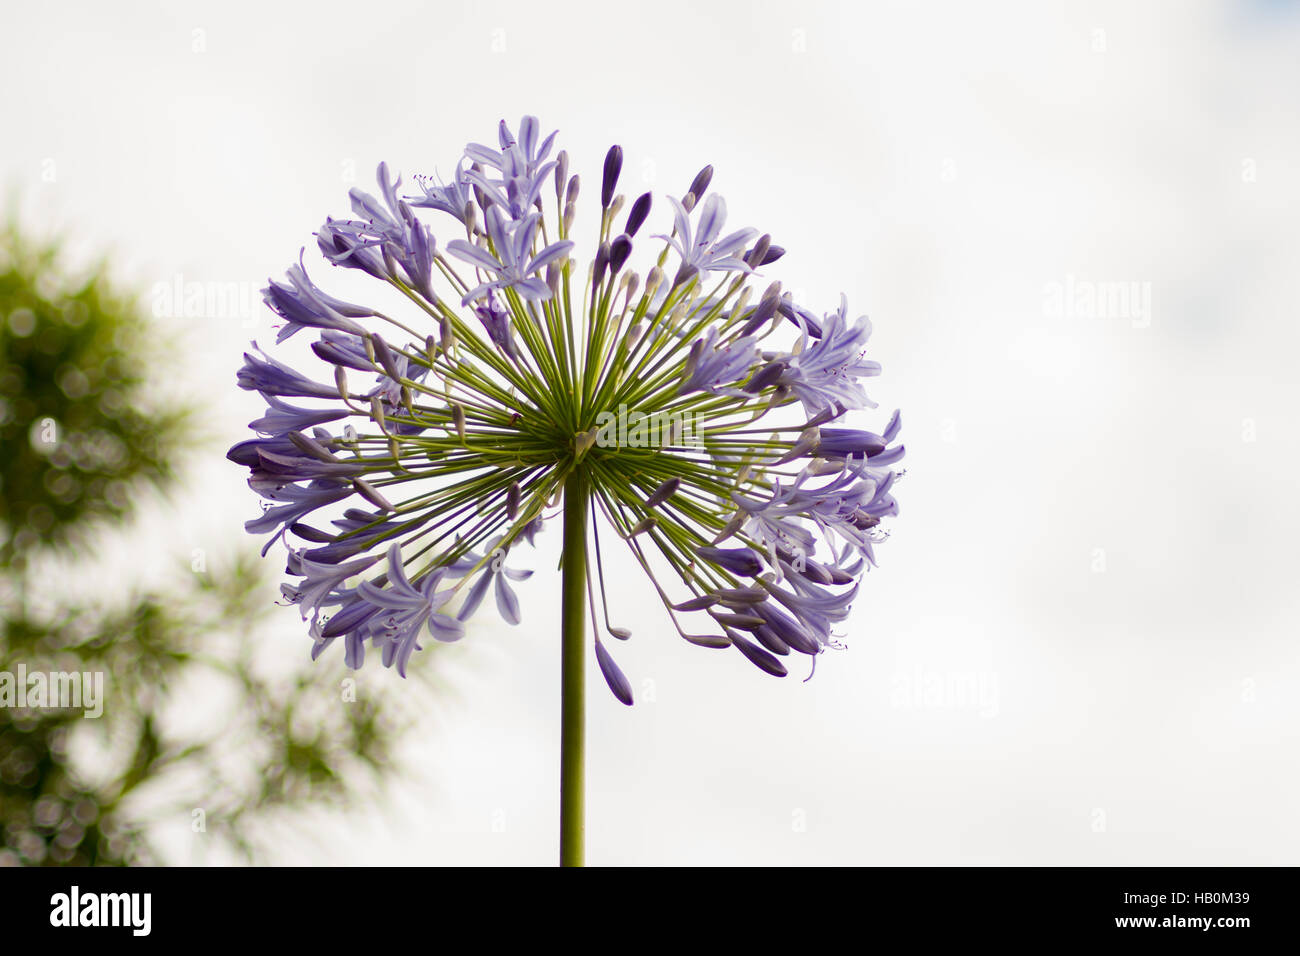 African agapanthus (Agapathus africanus) - Stock Image